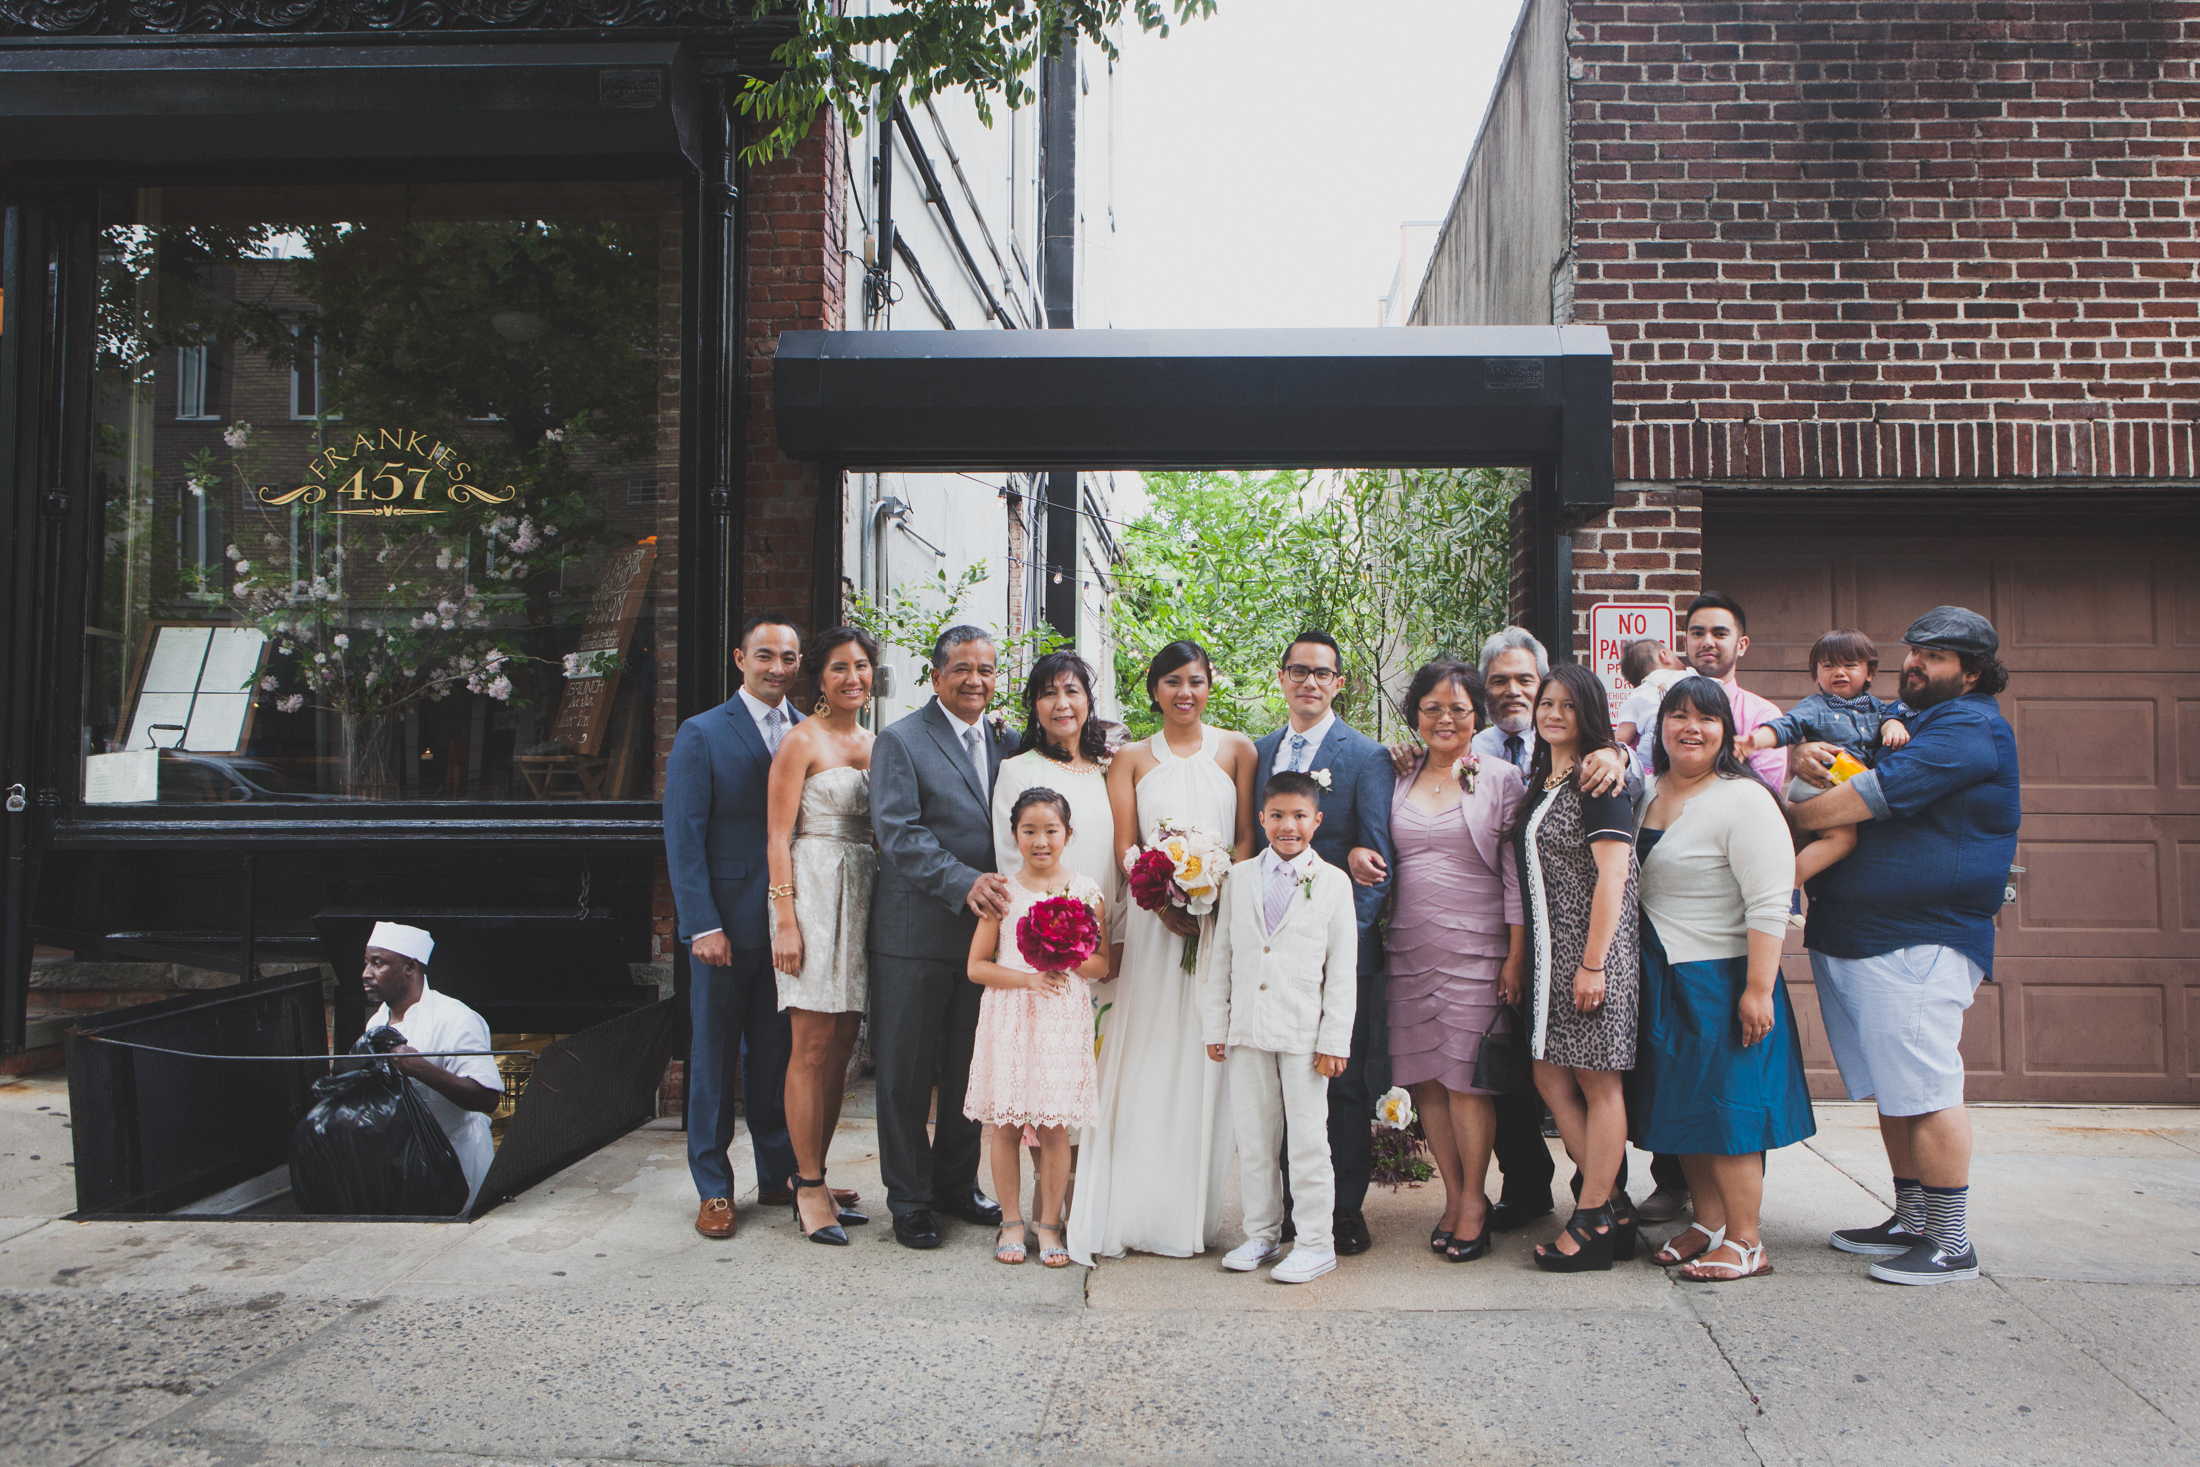 The wedding day of Audrey & Mike in Brooklyn, NY